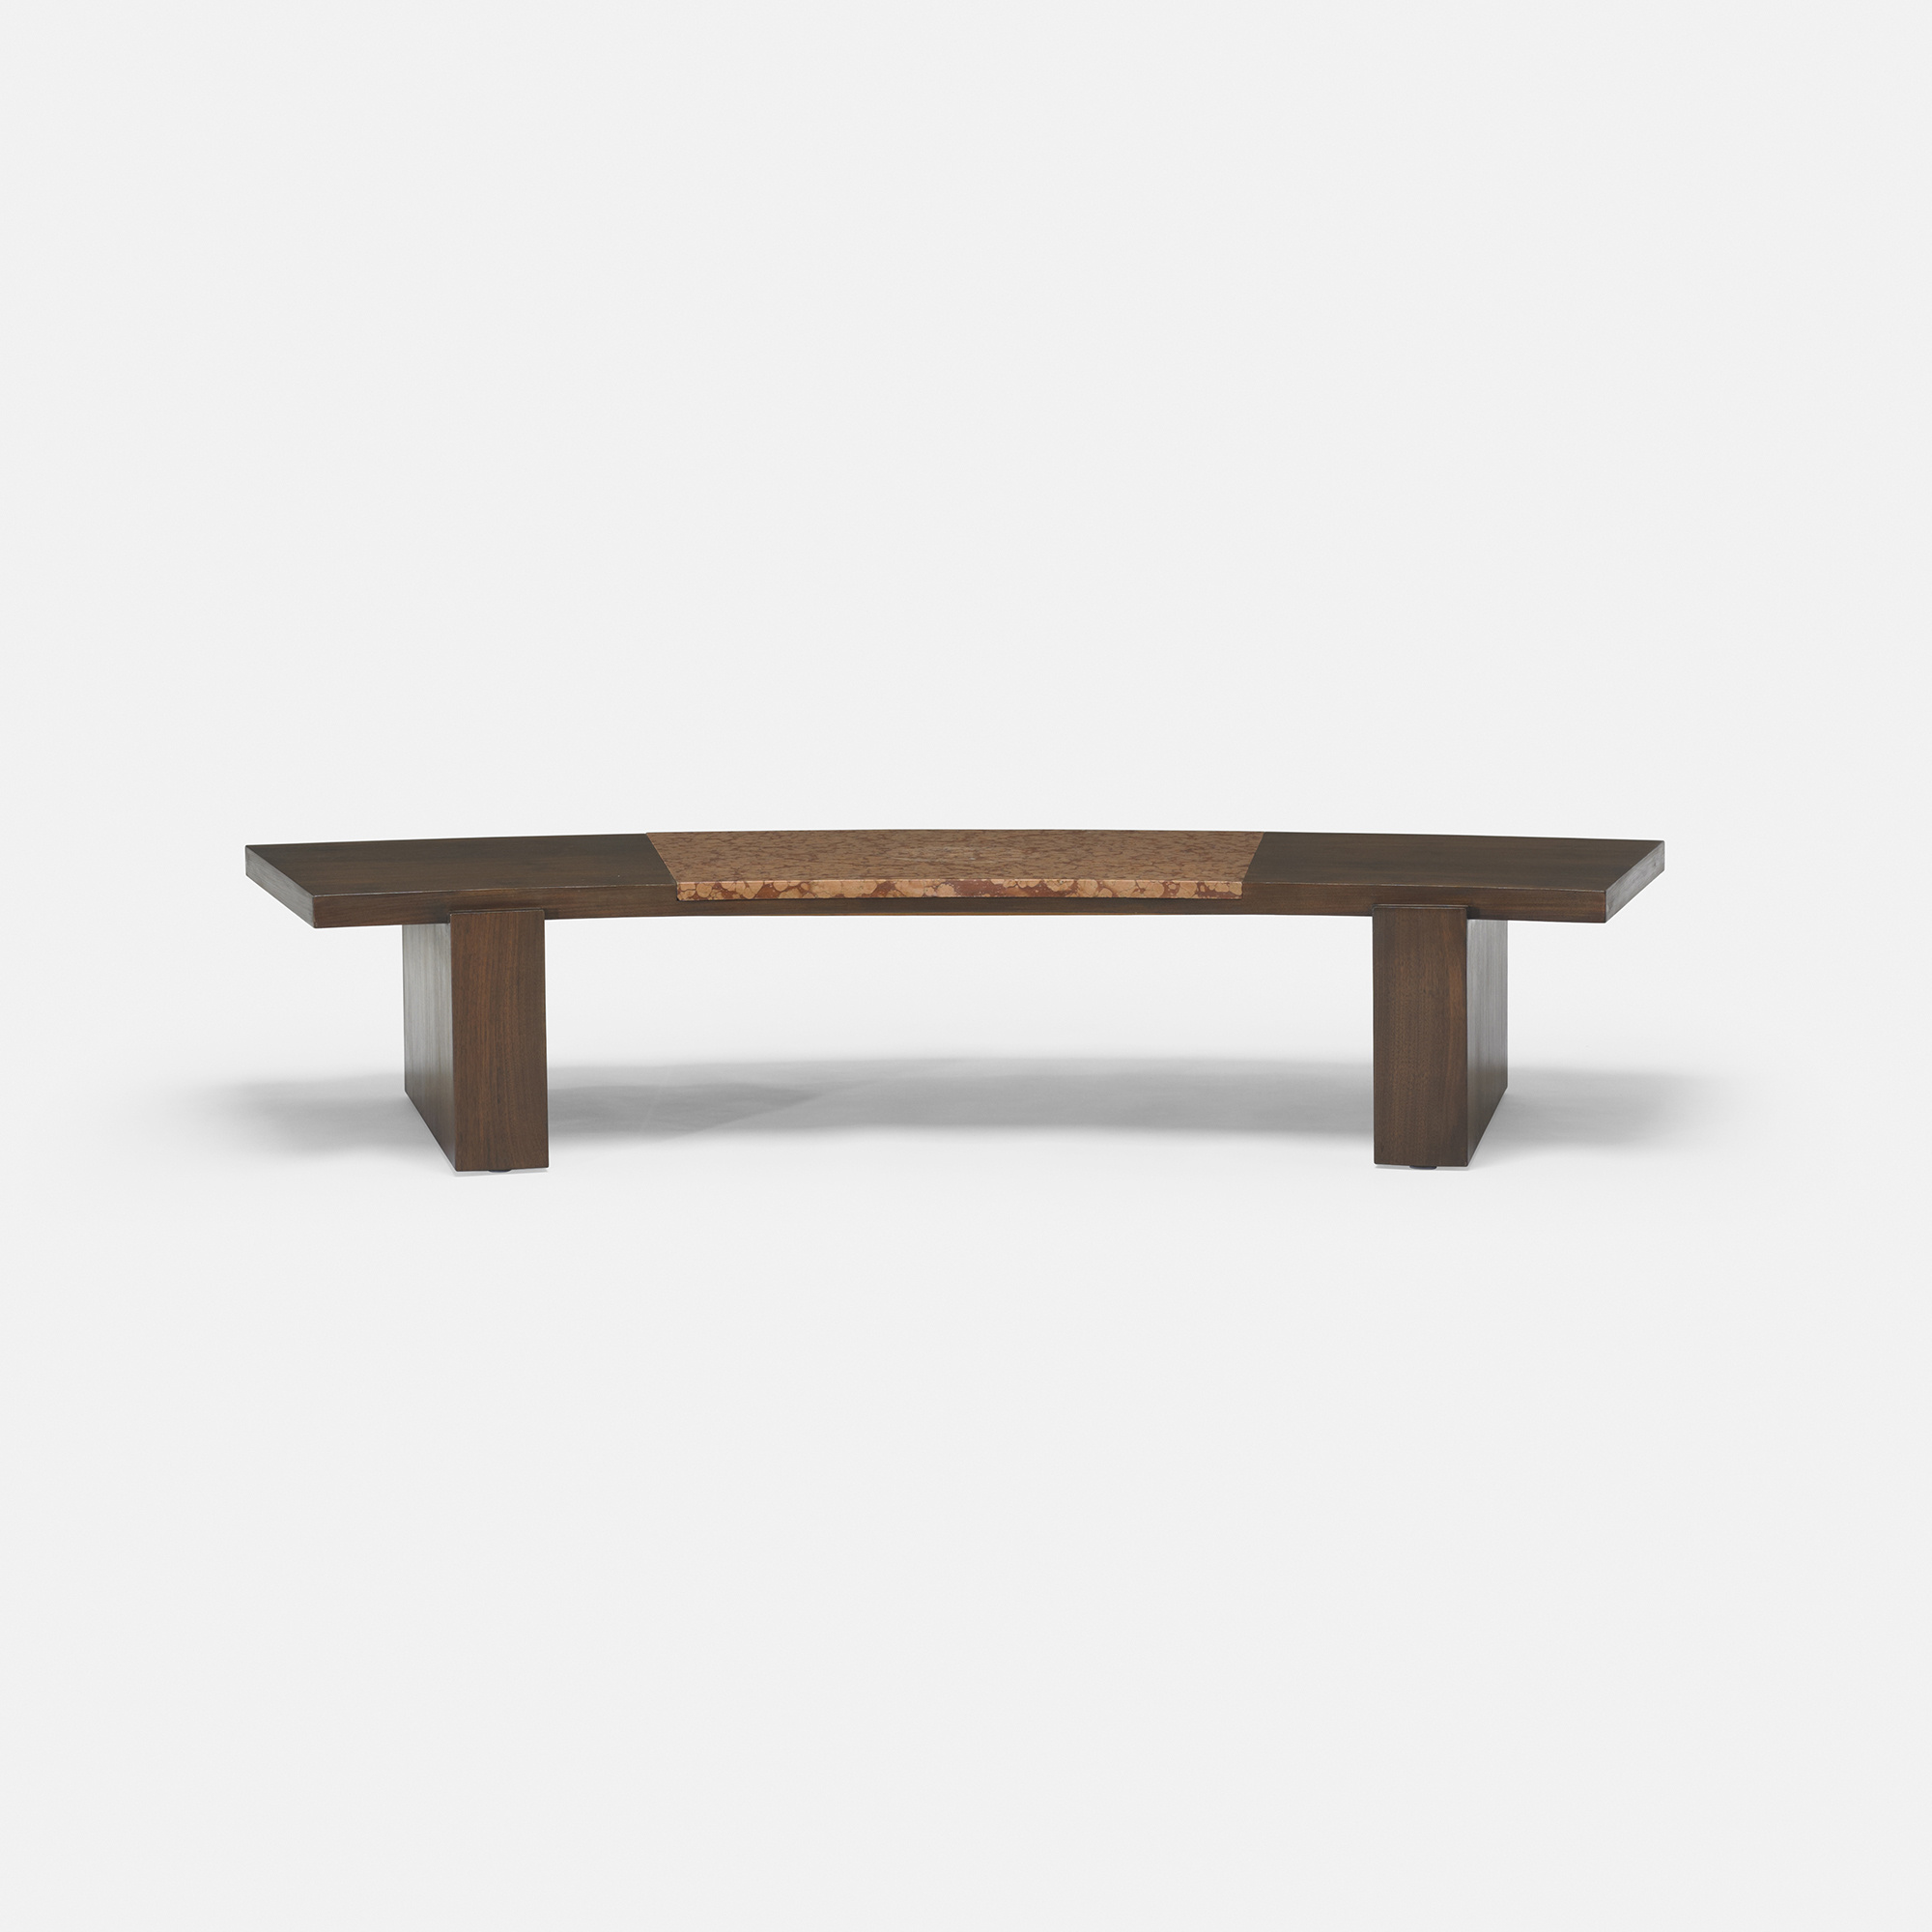 213 Vladimir Kagan coffee table from a Manhattan Interior